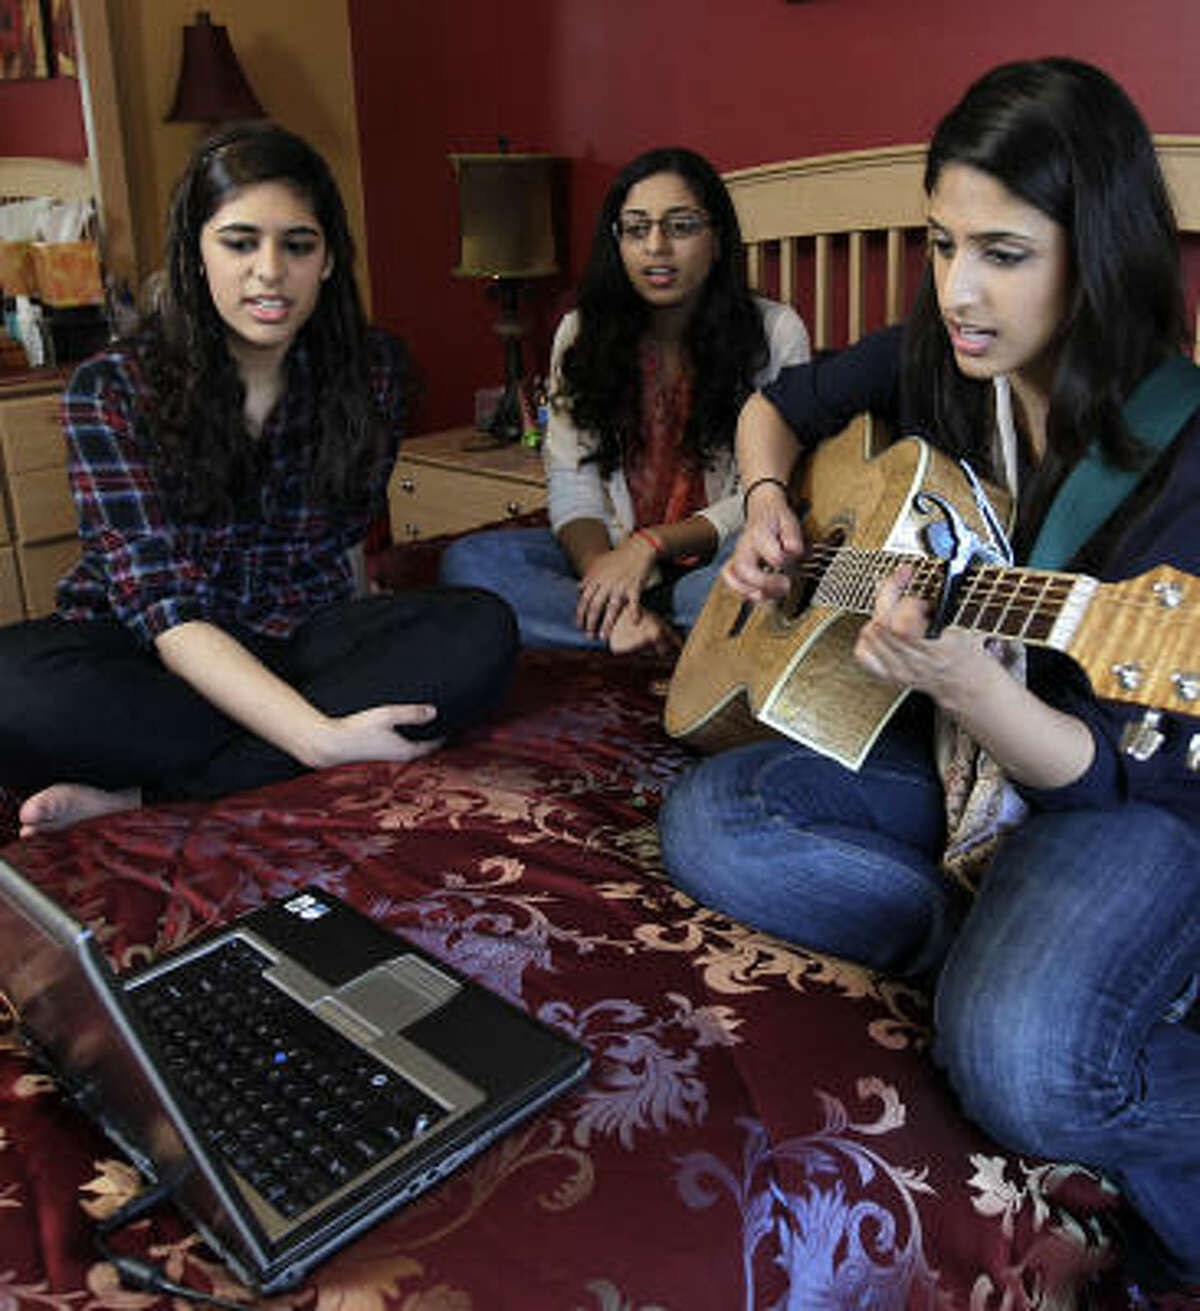 Asma Mirza plays guitar and sings with her sisters Ayesha, 16, left, and Hira, 18, at her Houston-area home. Born in Pakistan, Mirza has lived in the United States for 19 of her 20 years and is a naturalized American citizen.